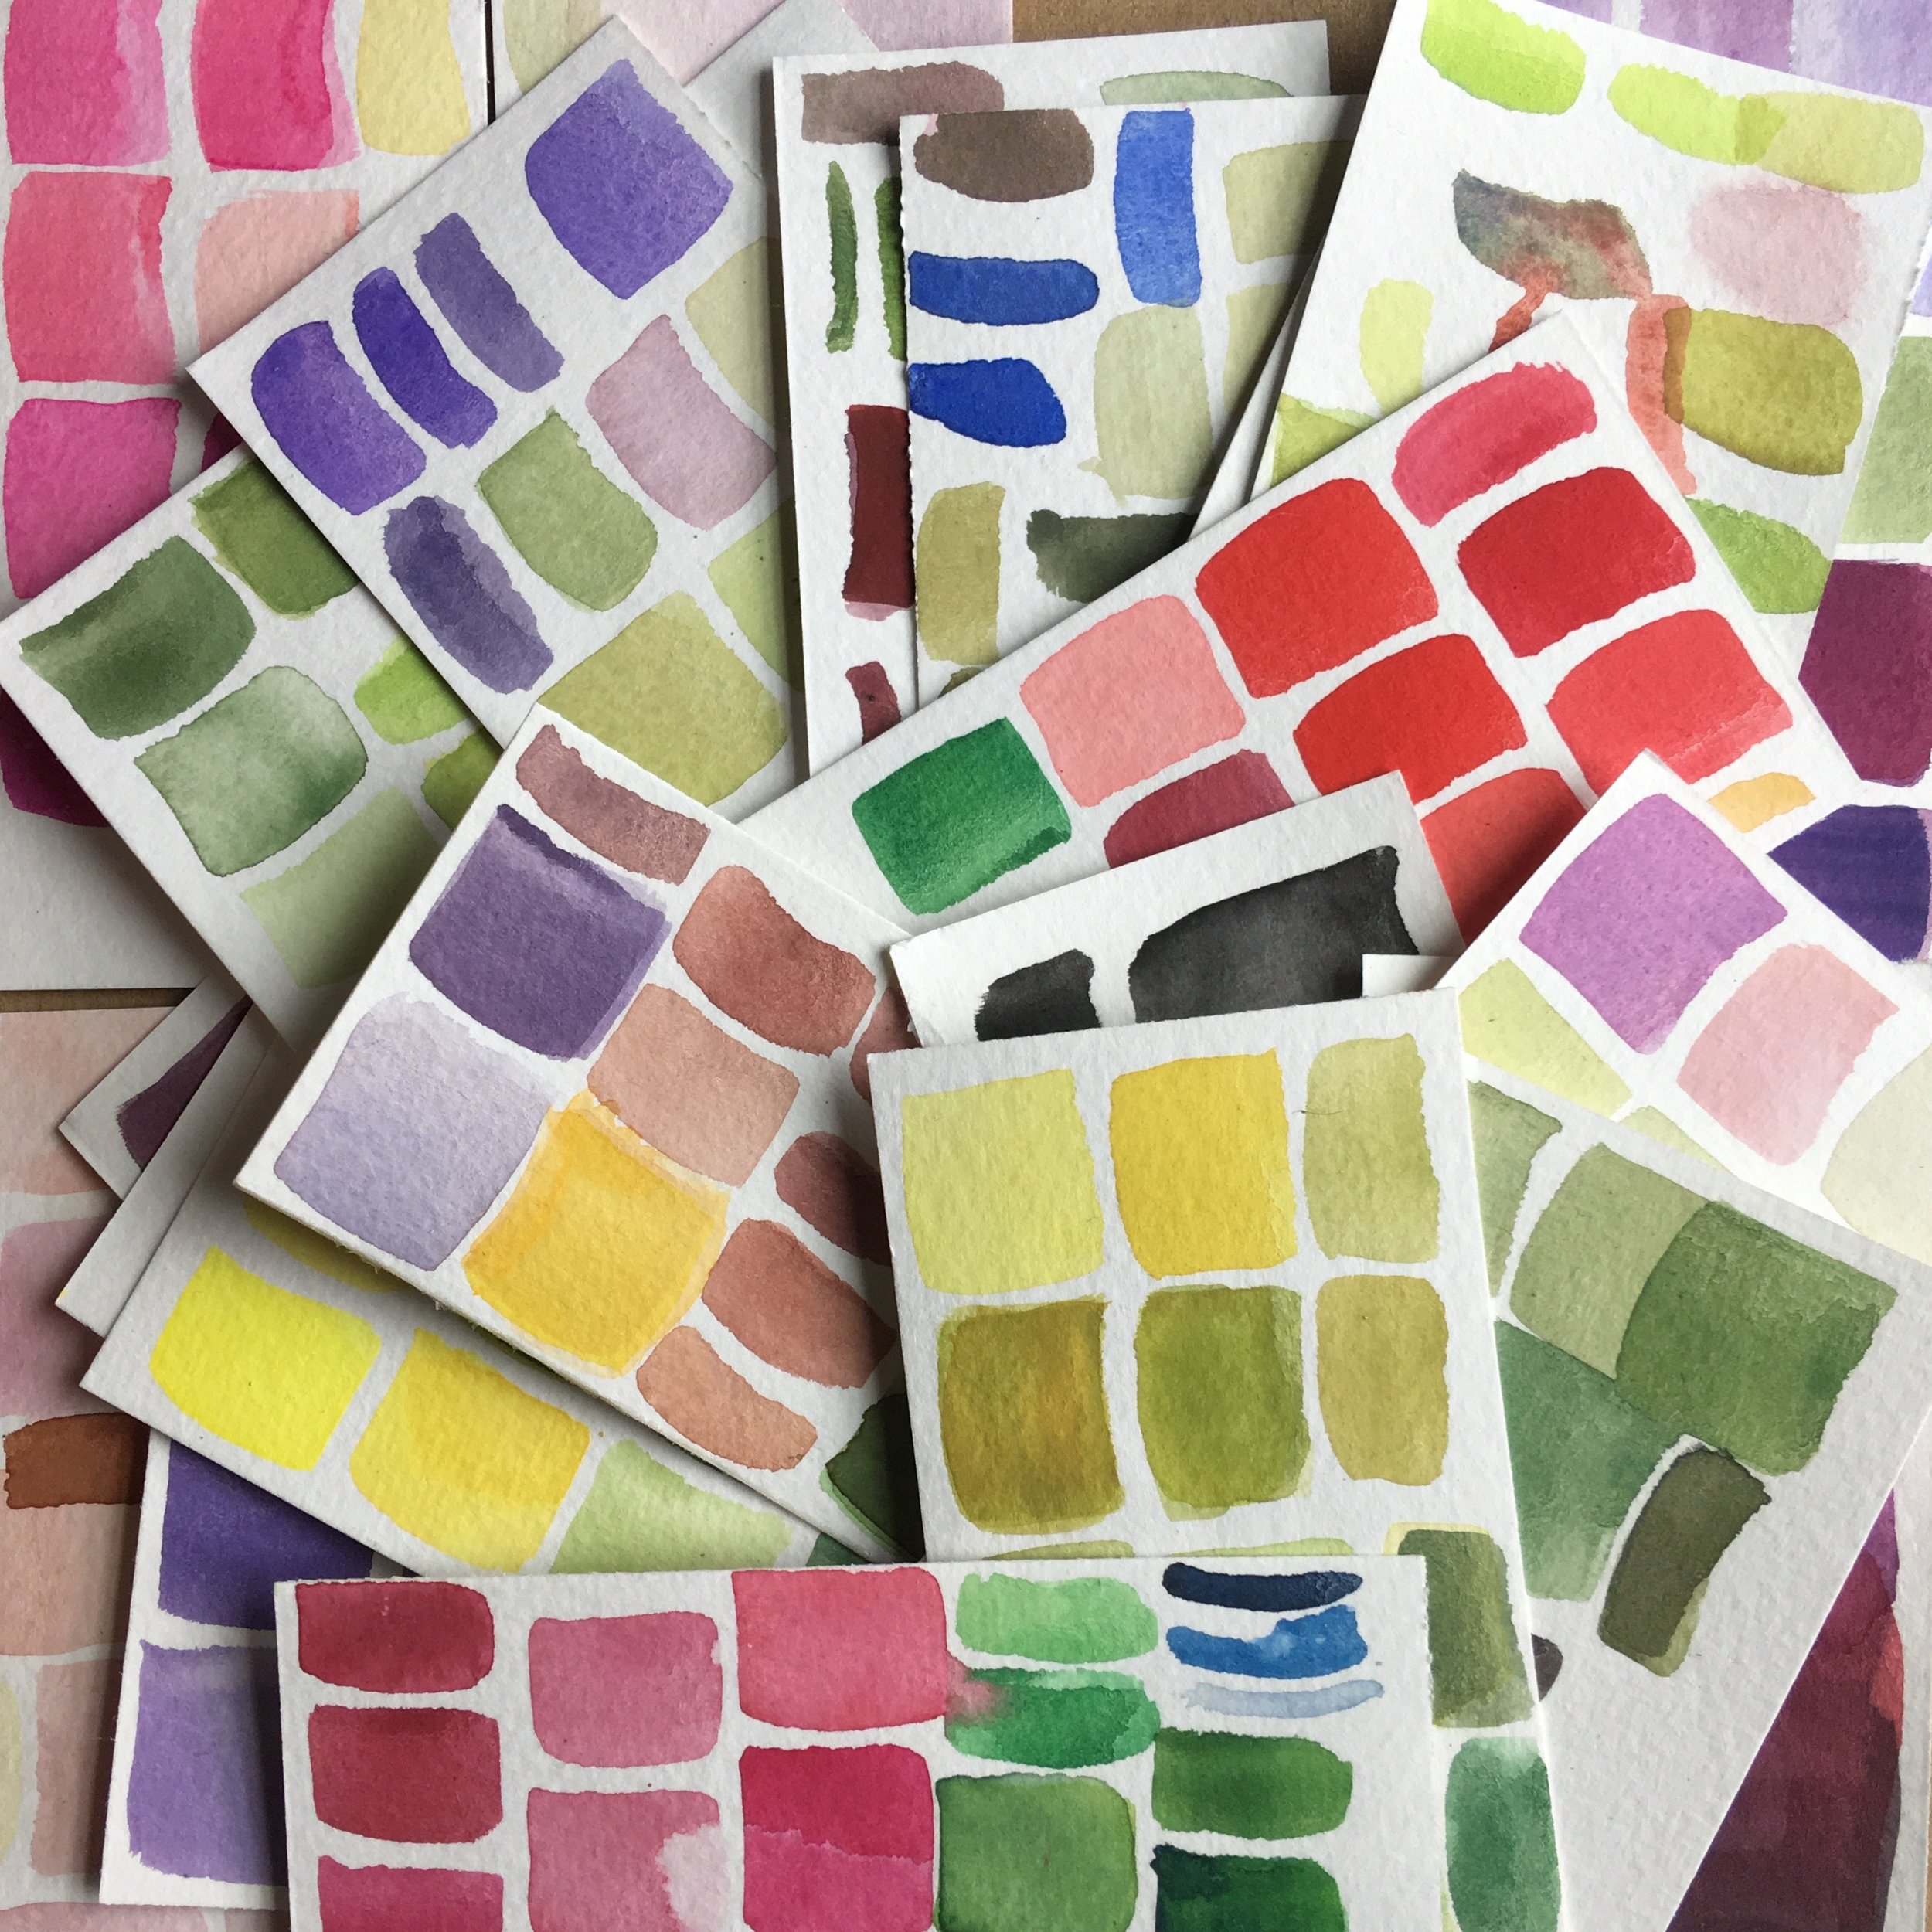 Watercolor swatches, evidence of testing and trying to see